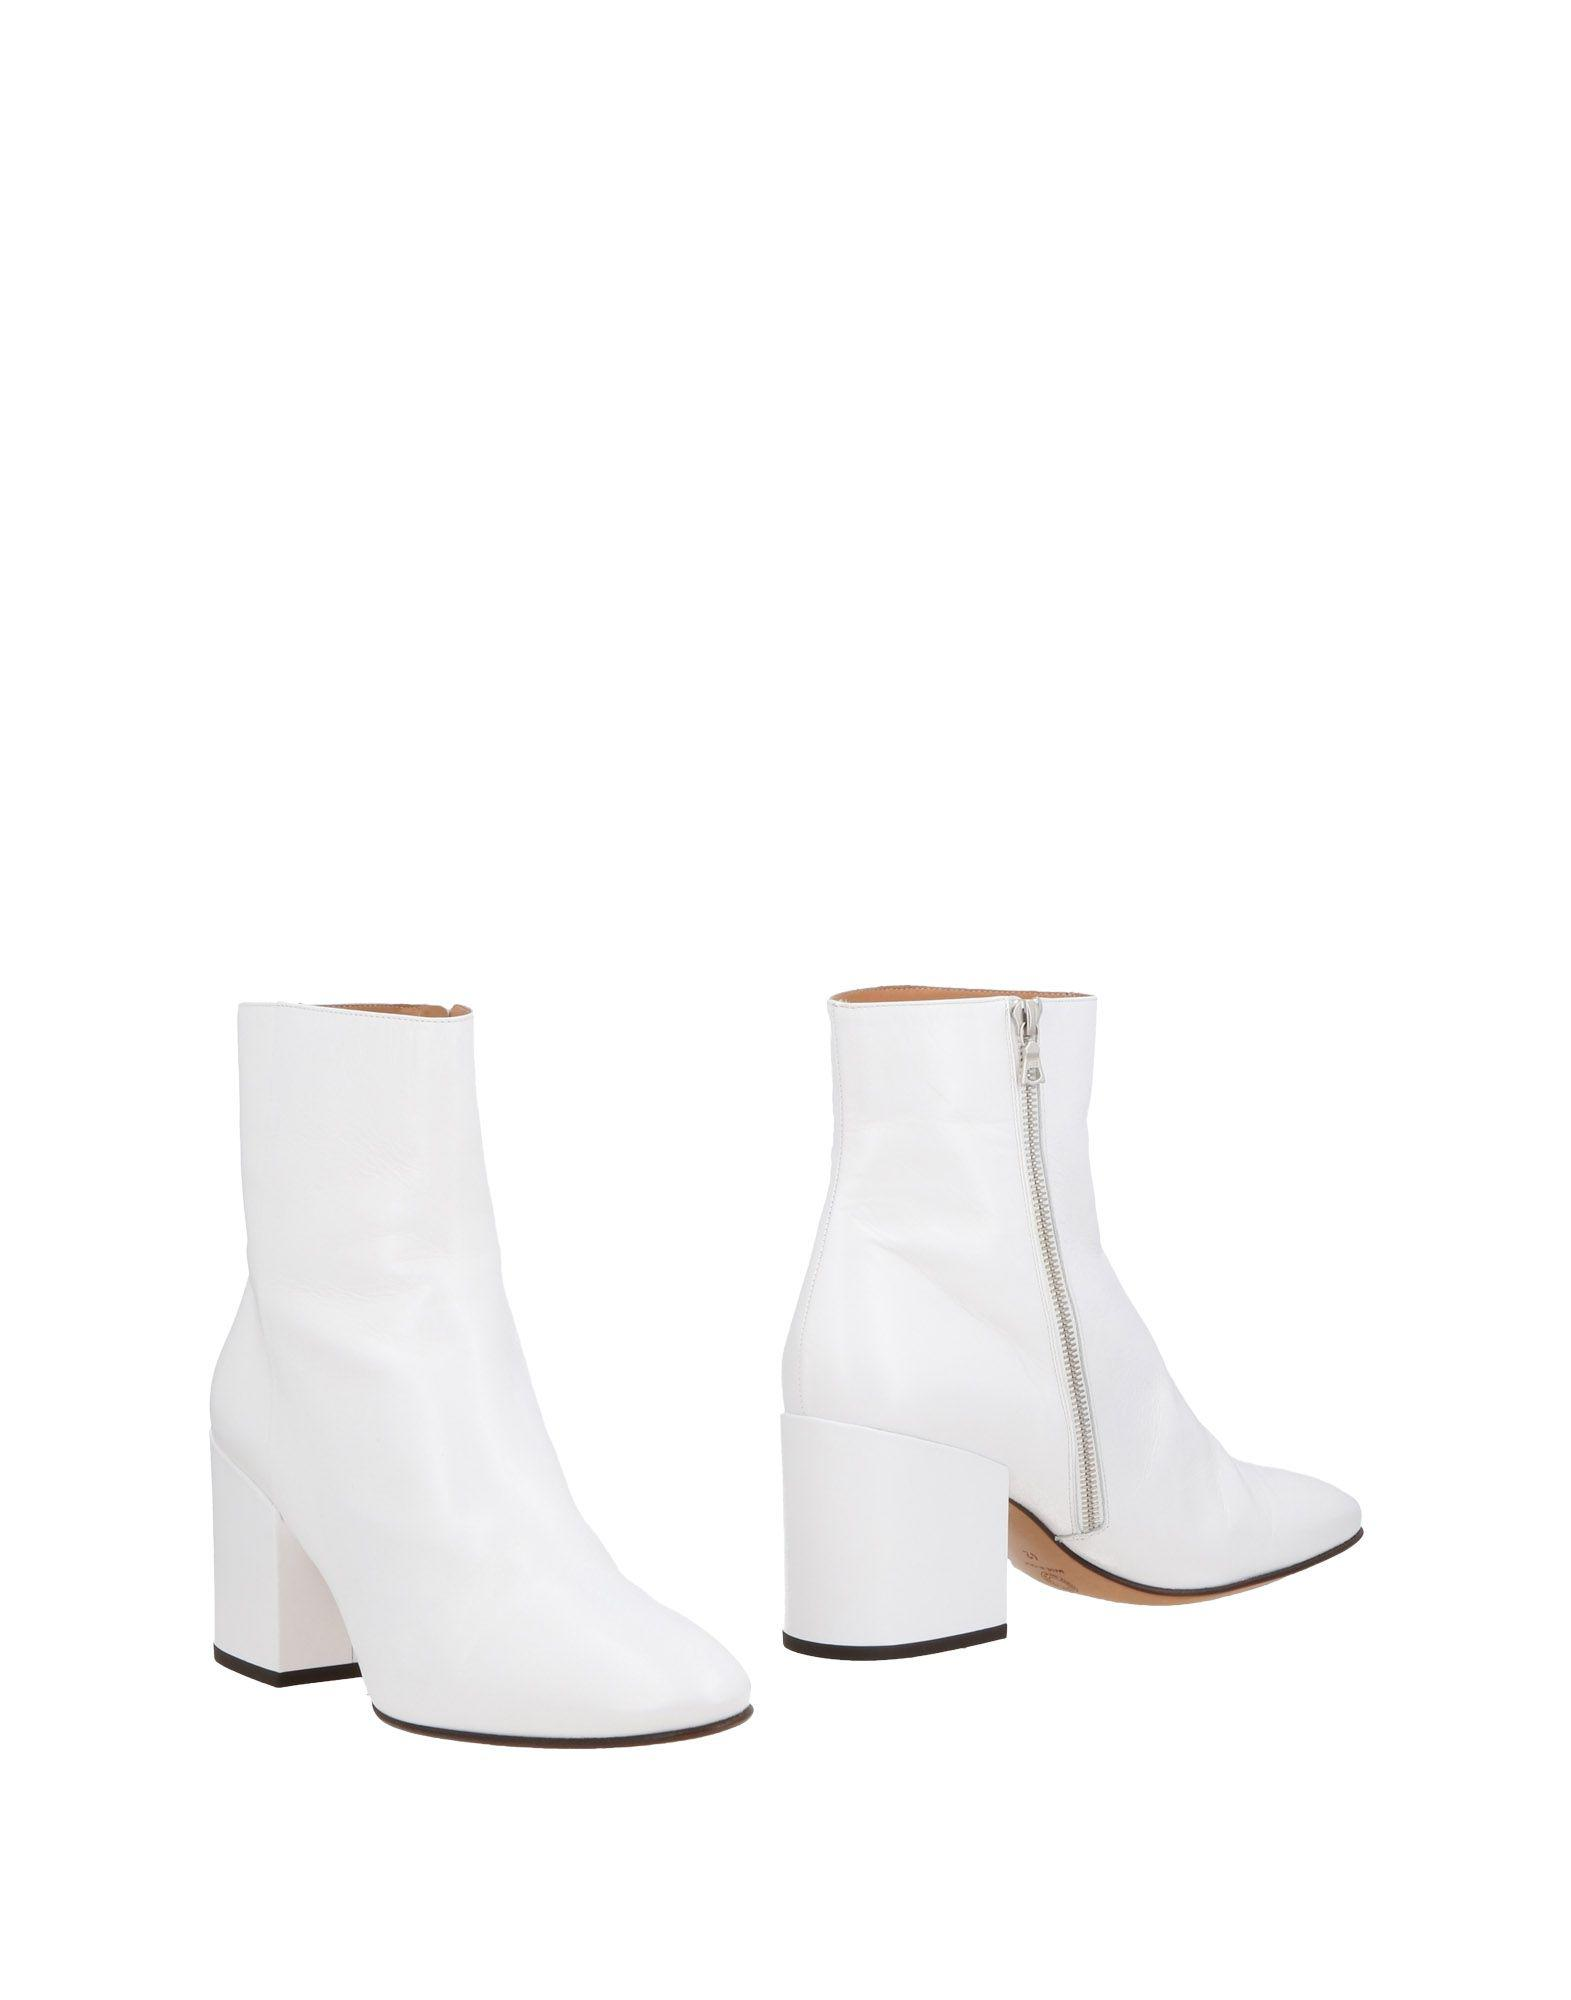 fb0032cc24 Dries Van Noten Ankle Boots in White - Lyst